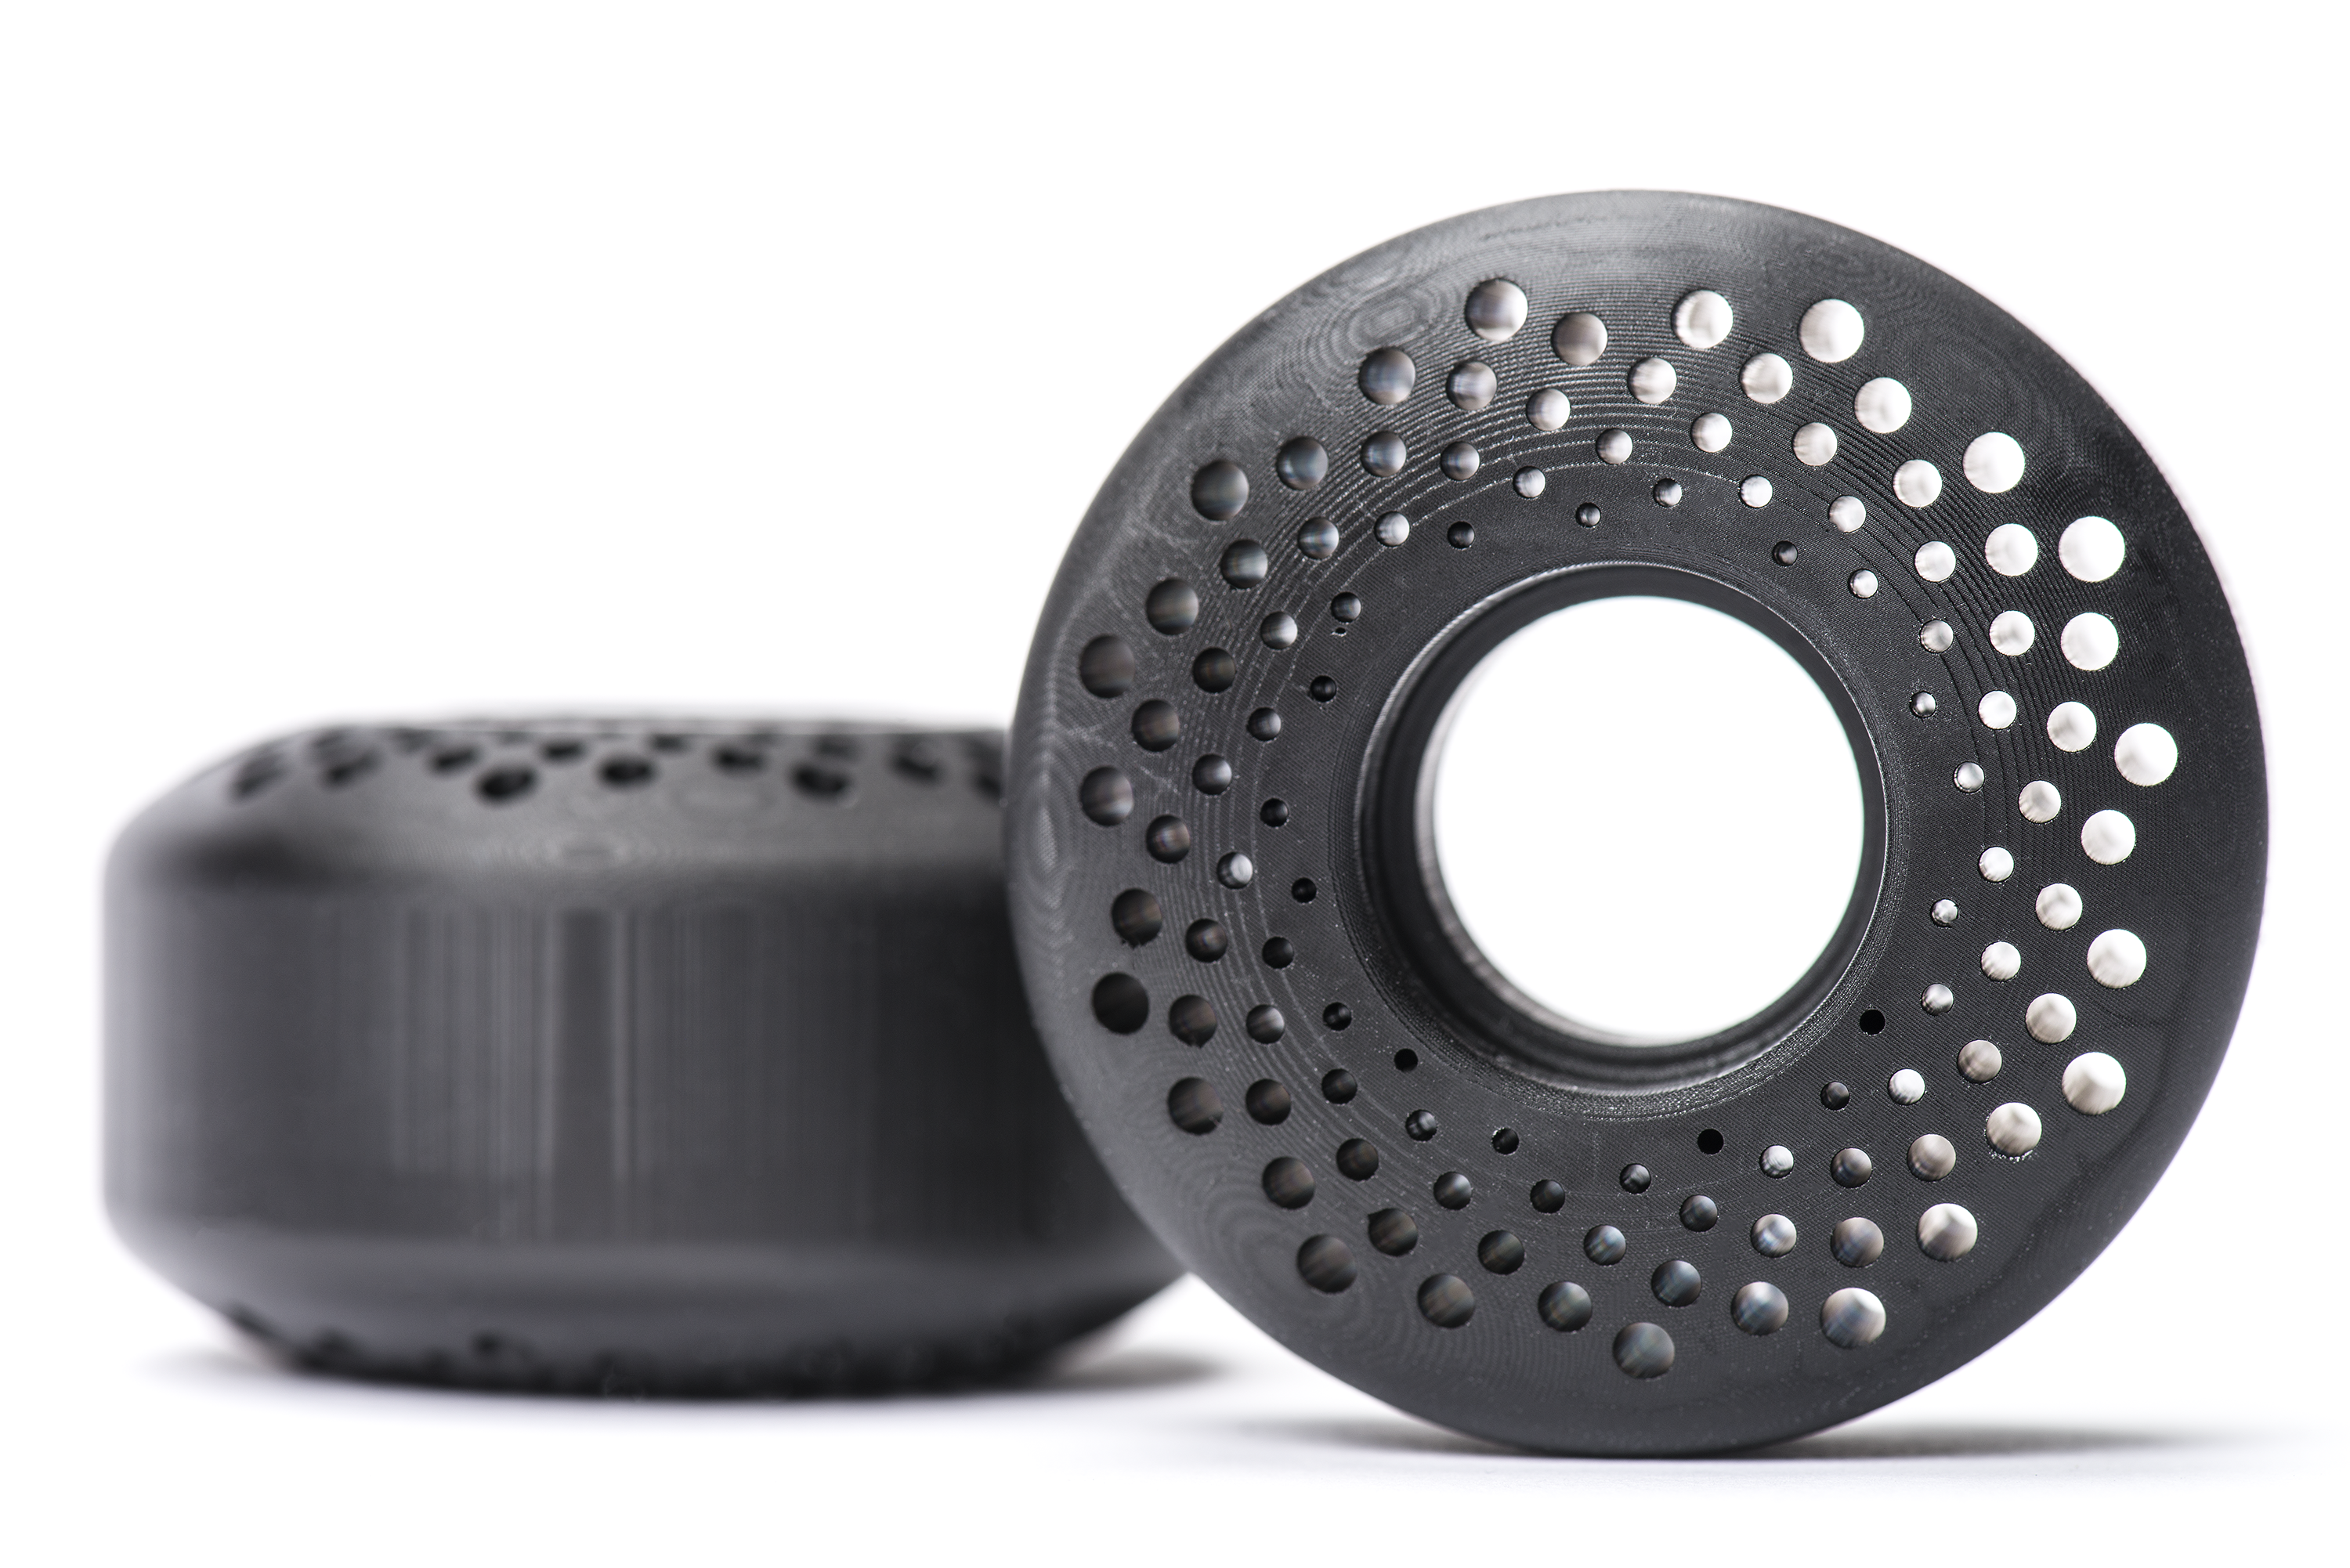 Skateboard wheels 3D printed with Carbon$0027s FPU material. Photo via Protolabs.